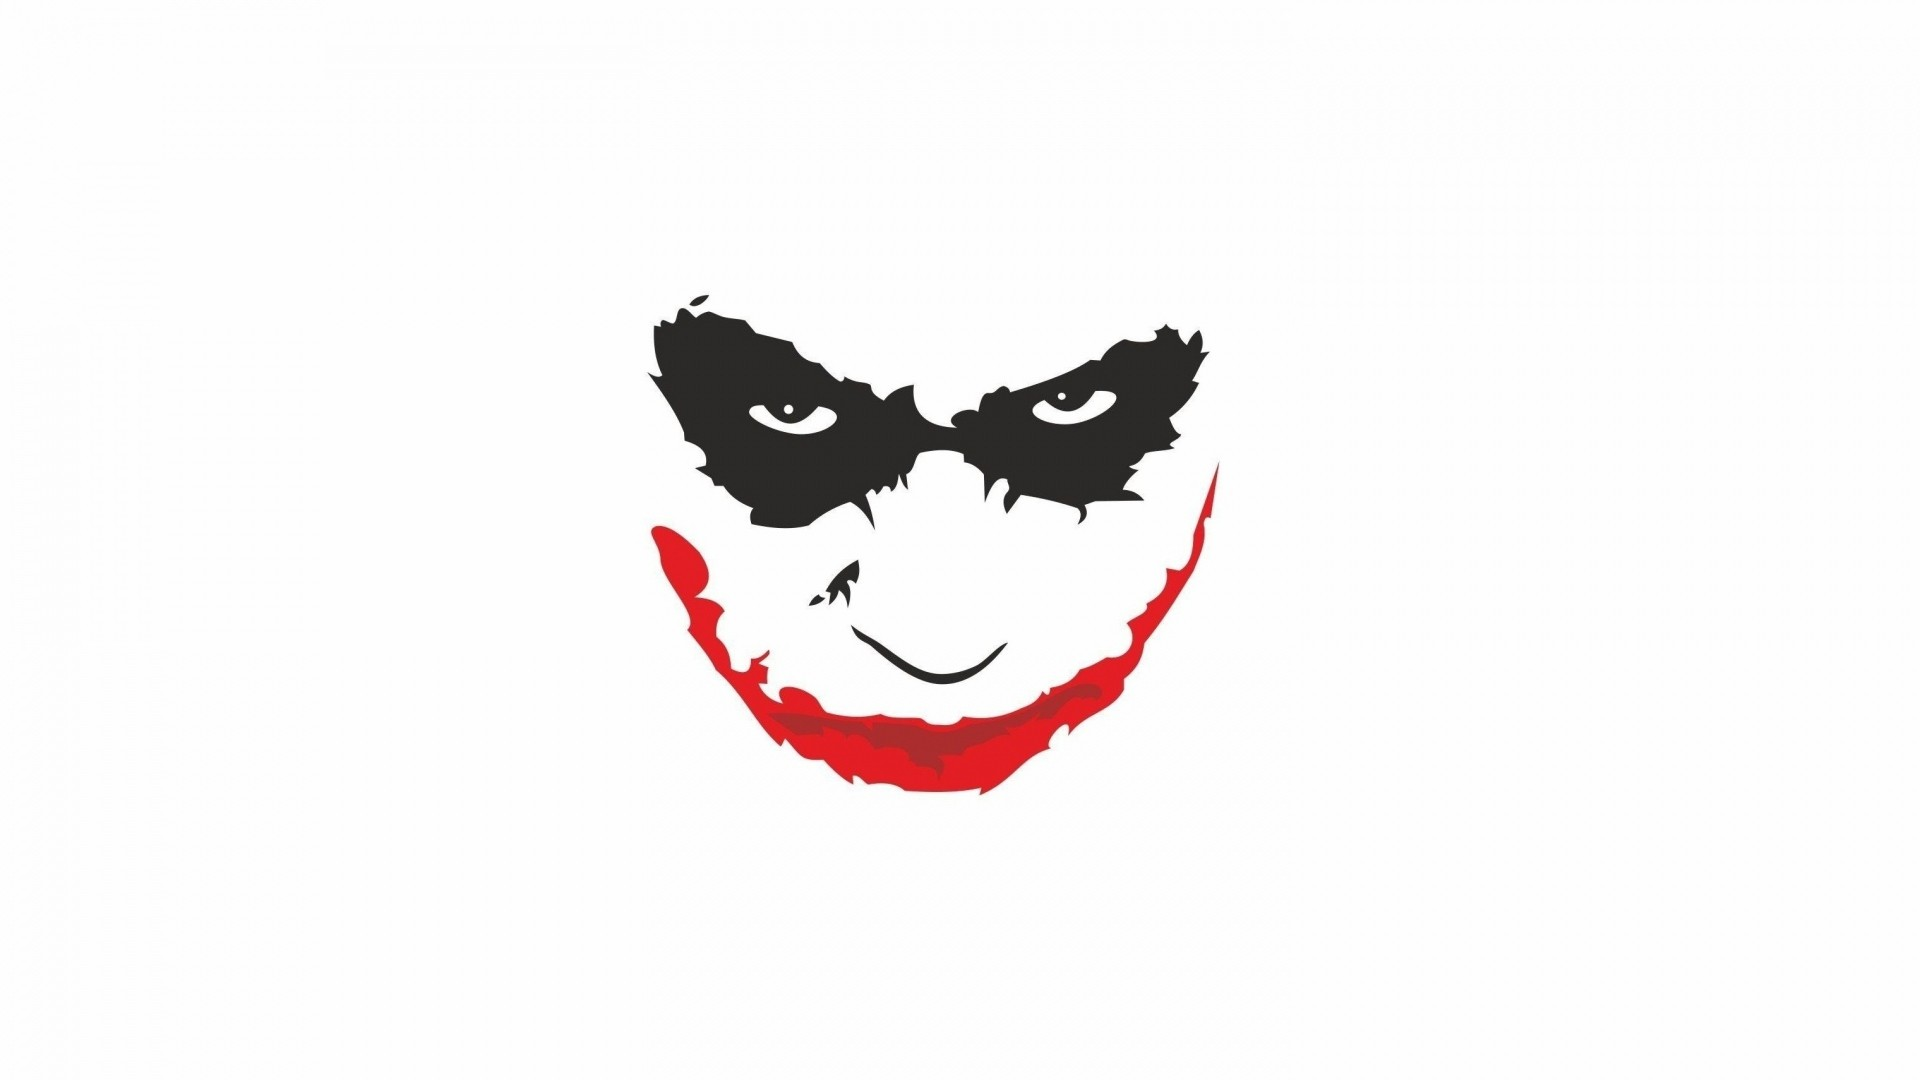 1920x1080 38-smiling-white-background-joker(joker-wallpaper)